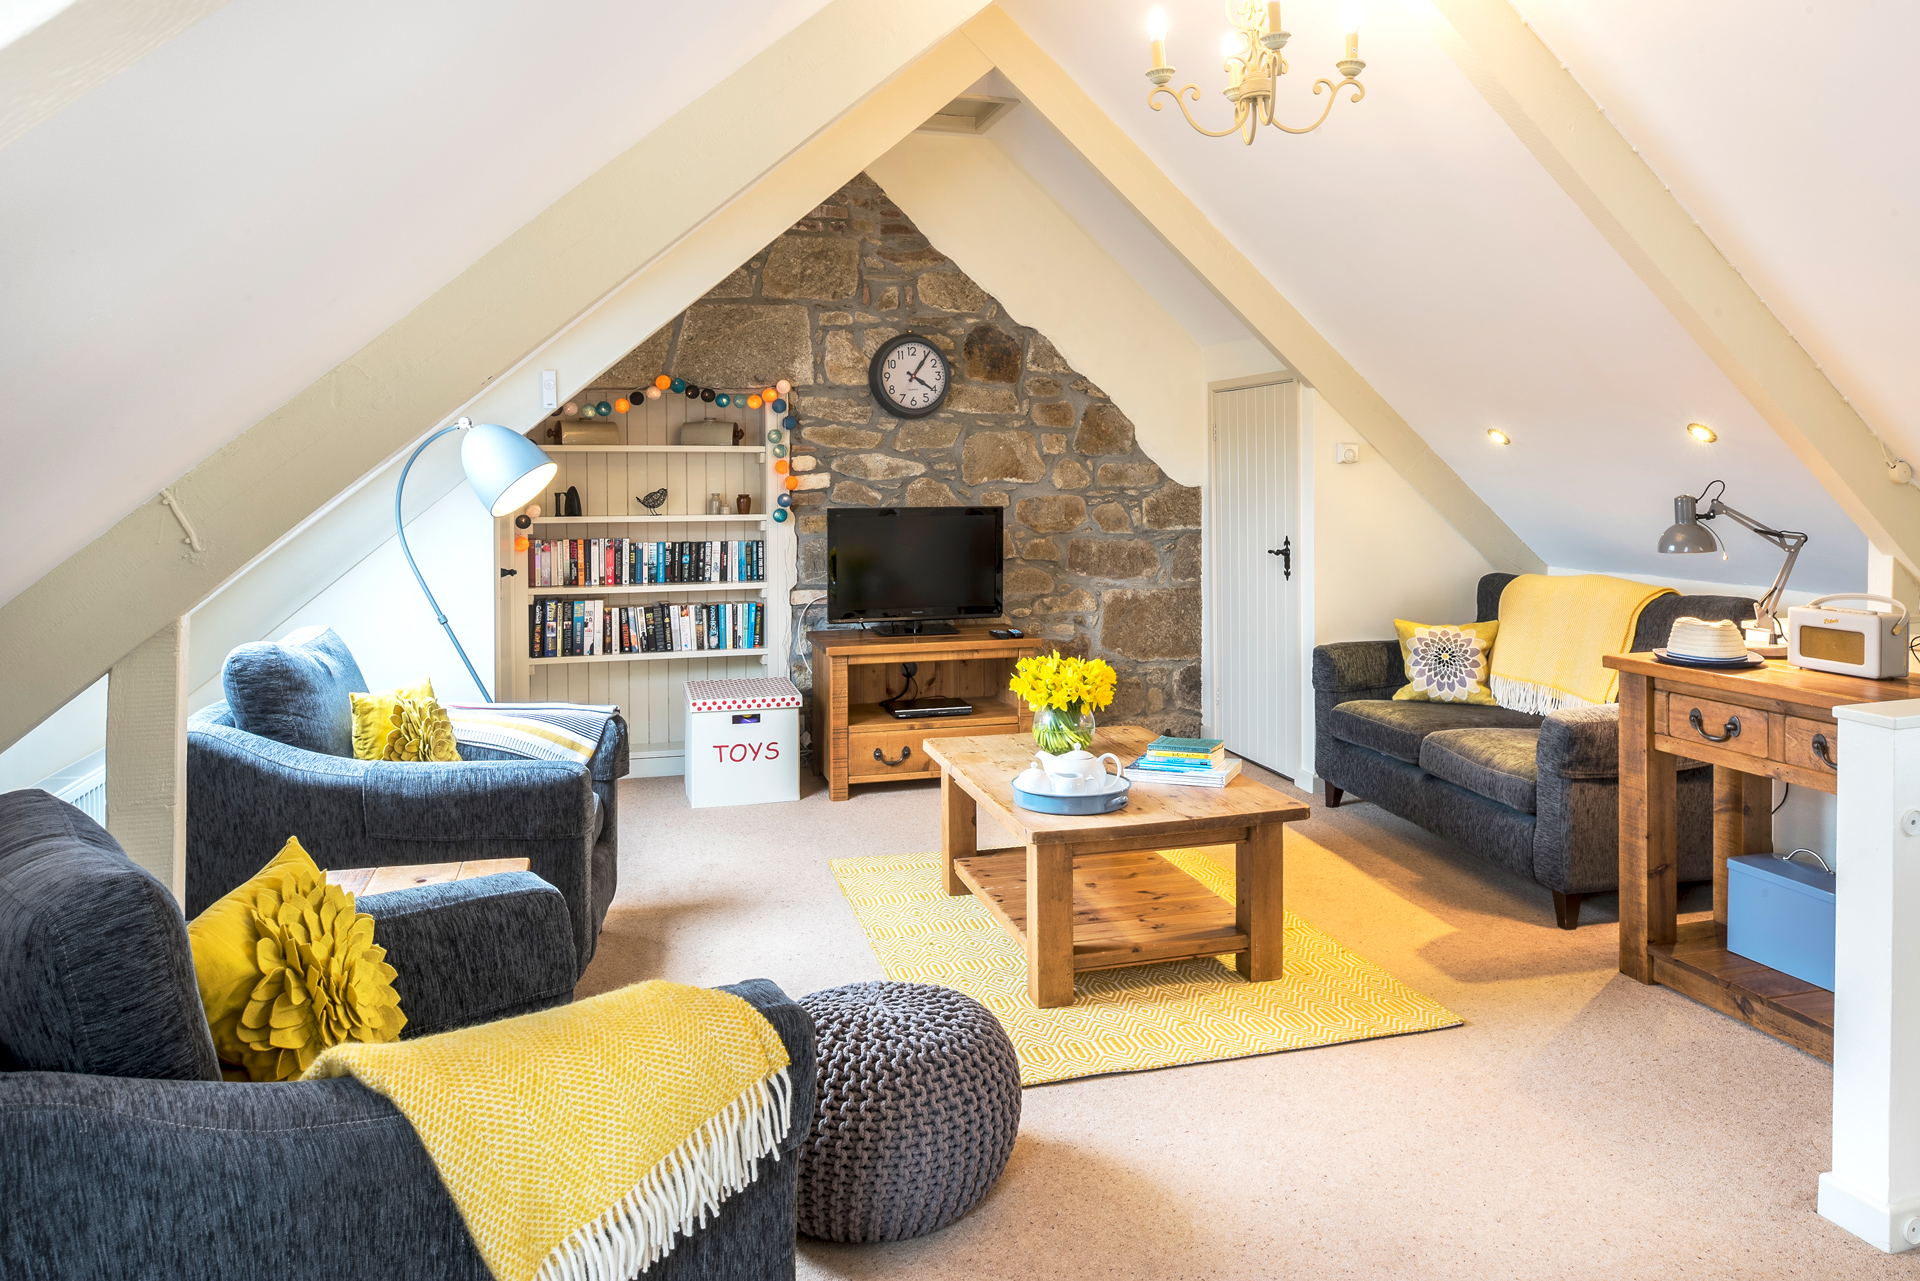 tregongeeves-farm-cottages-holiday-cornwall-st-austell-swallows-lounge-2